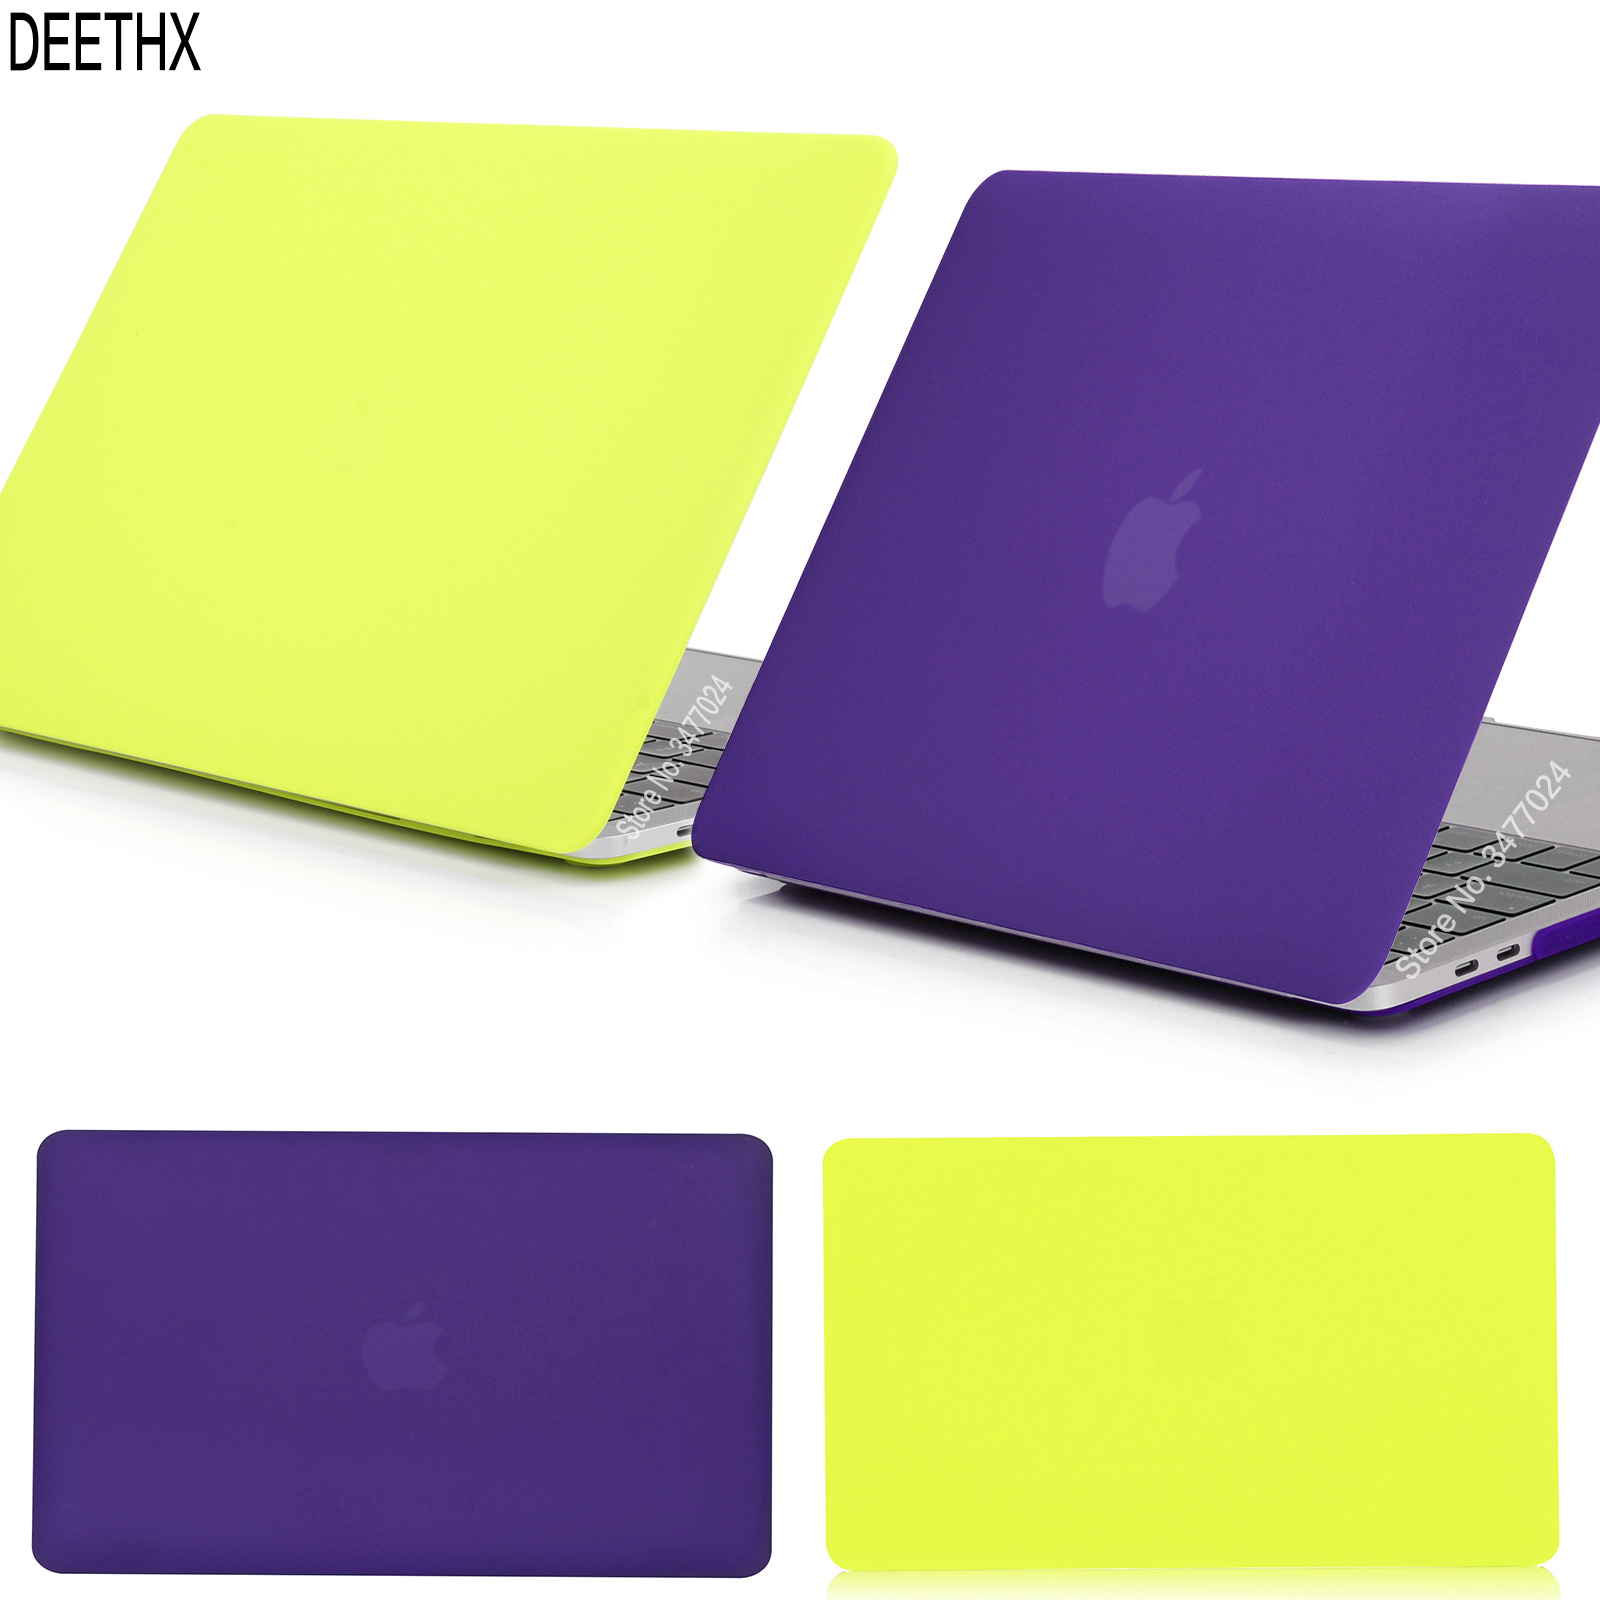 New Matte Laptop Case For apple Macbook Pro 13 inch 2019 new model A1706 <font><b>A1708</b></font> A1989 A2159, for <font><b>Mac</b></font> new pro 13.3 with Touch Bar image